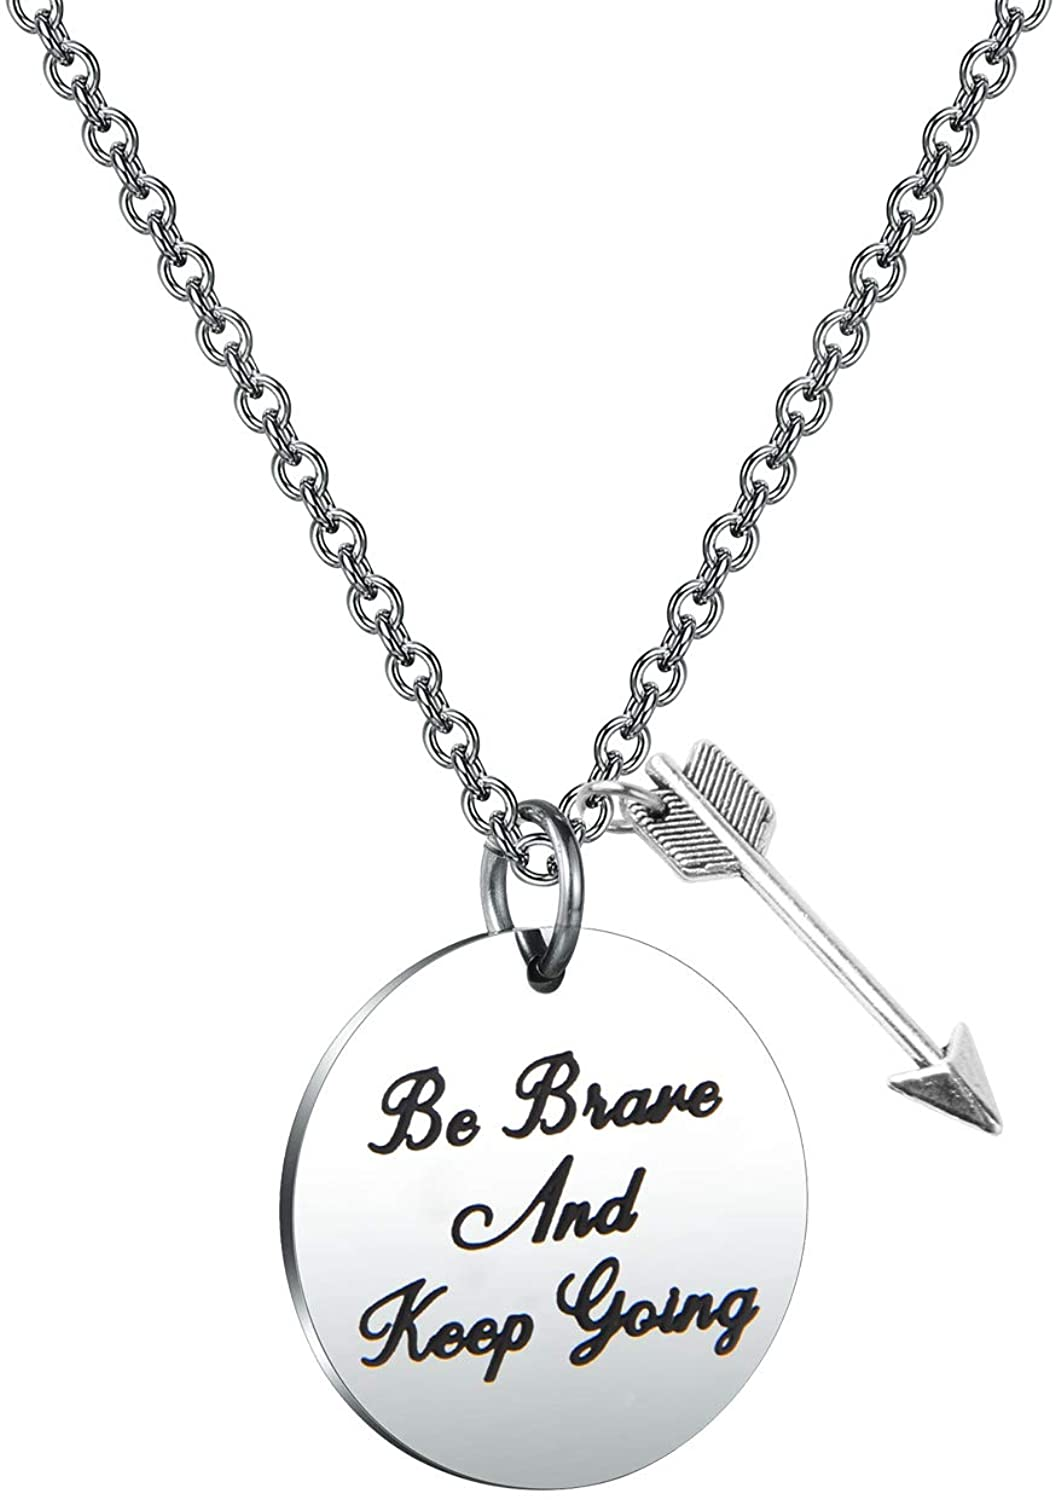 MAOFAED Inspiration Gift Be Brave and Keep Going Encouragement Jewelry Gift for Women Teen Girls Gift for Her